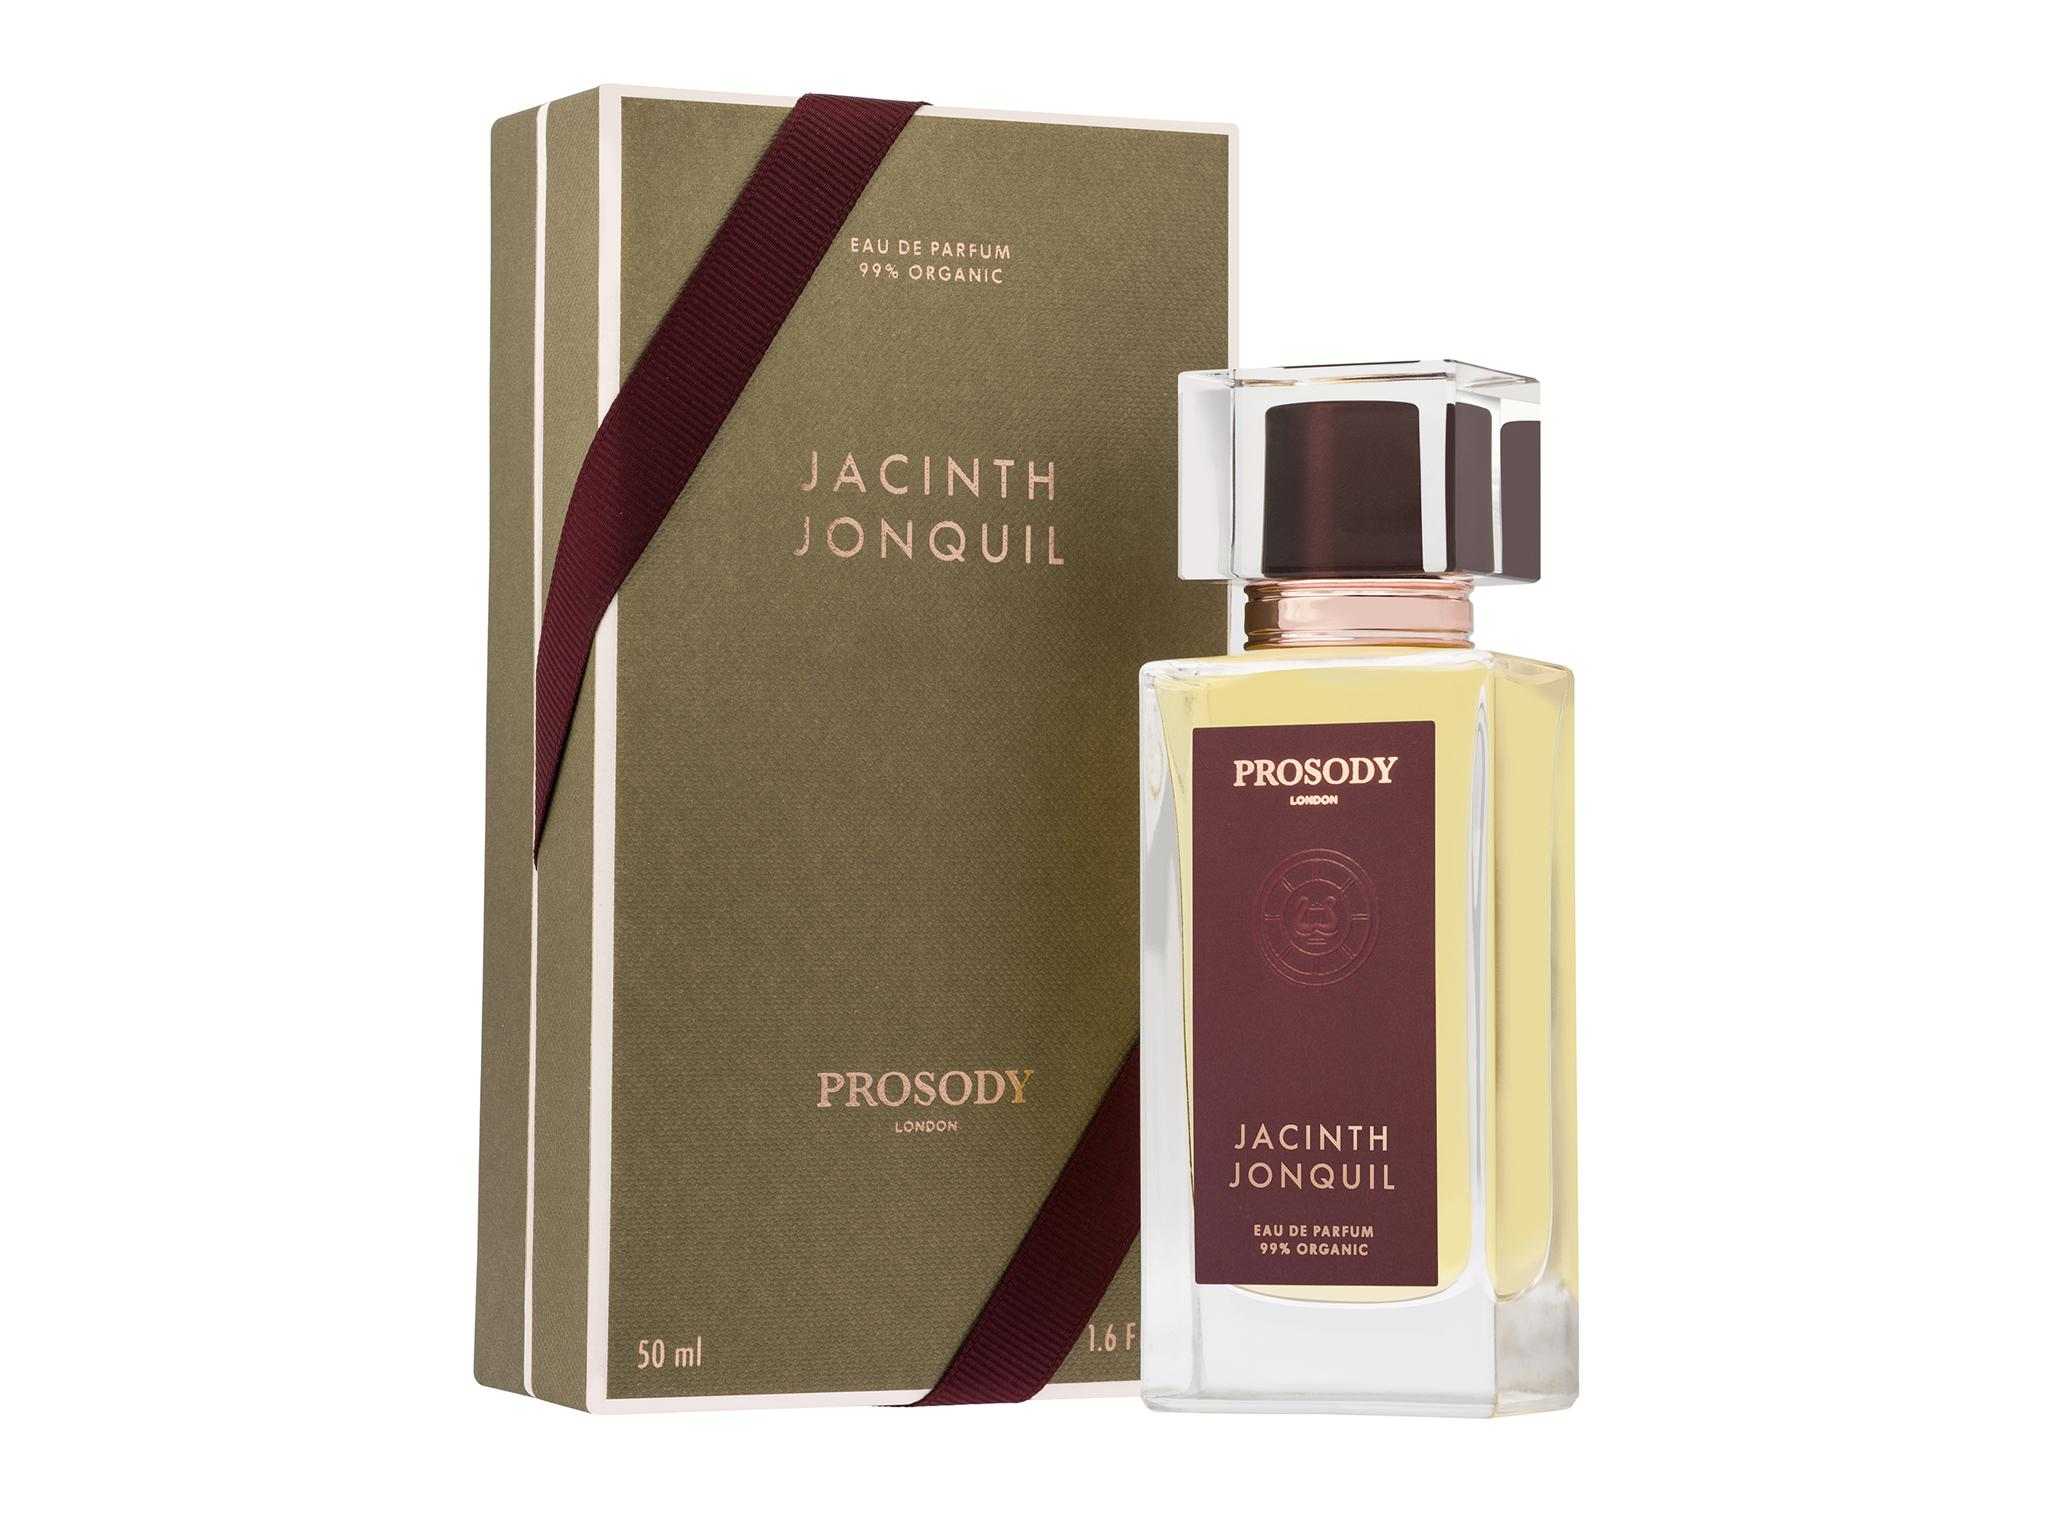 Prosody London Jacinth Jonquil  from £36 for 10ml, Fortnum and Mason 7c7f033b200